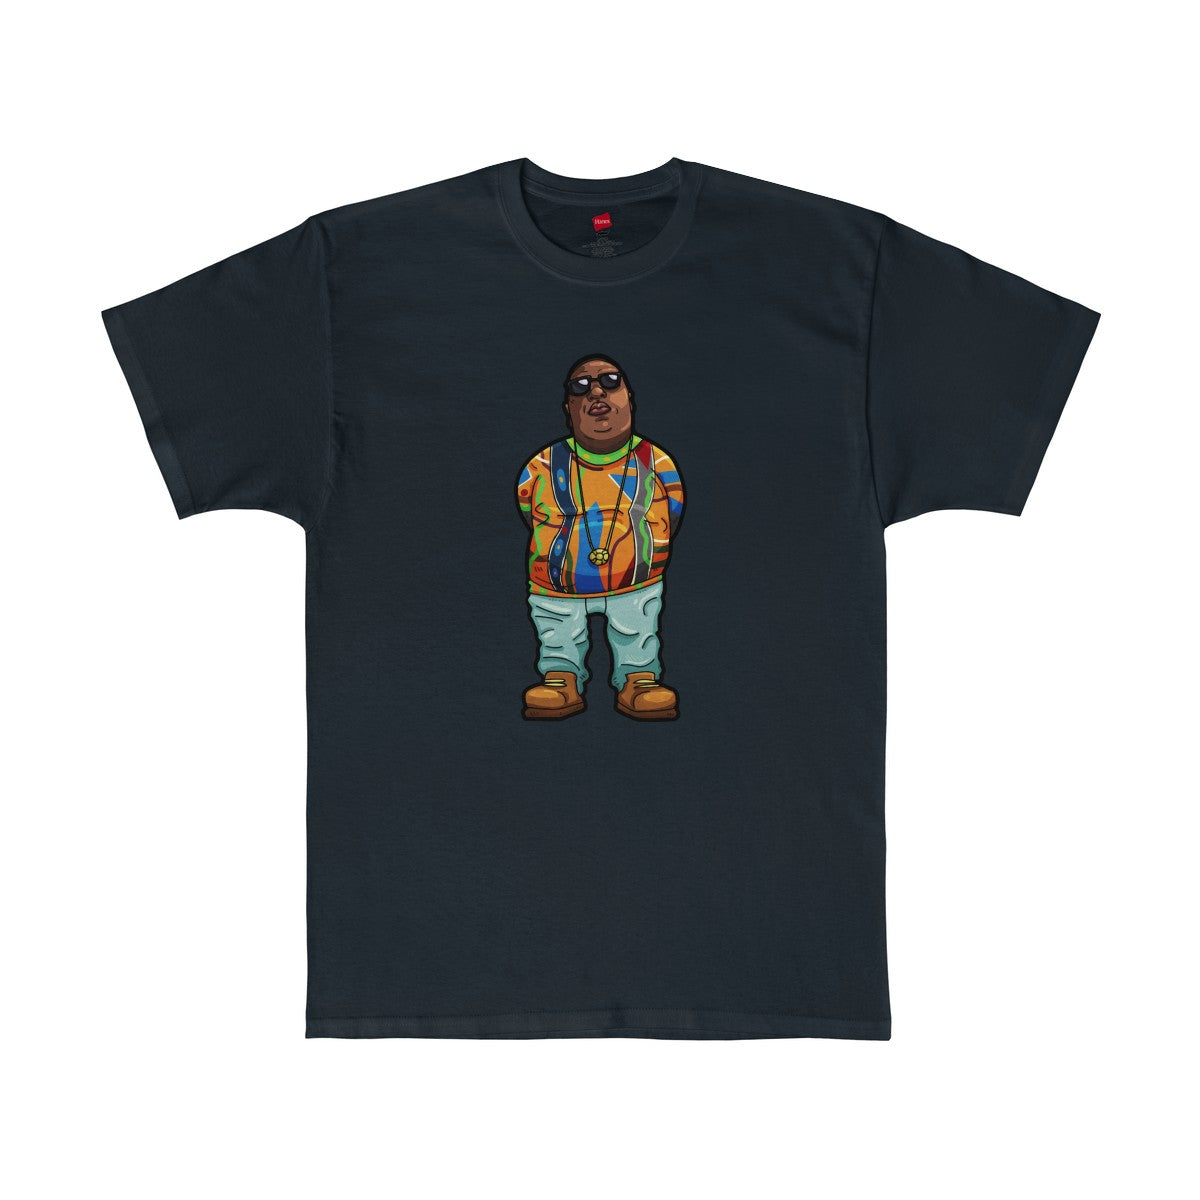 The Notorious B.I.G. T-Shirt